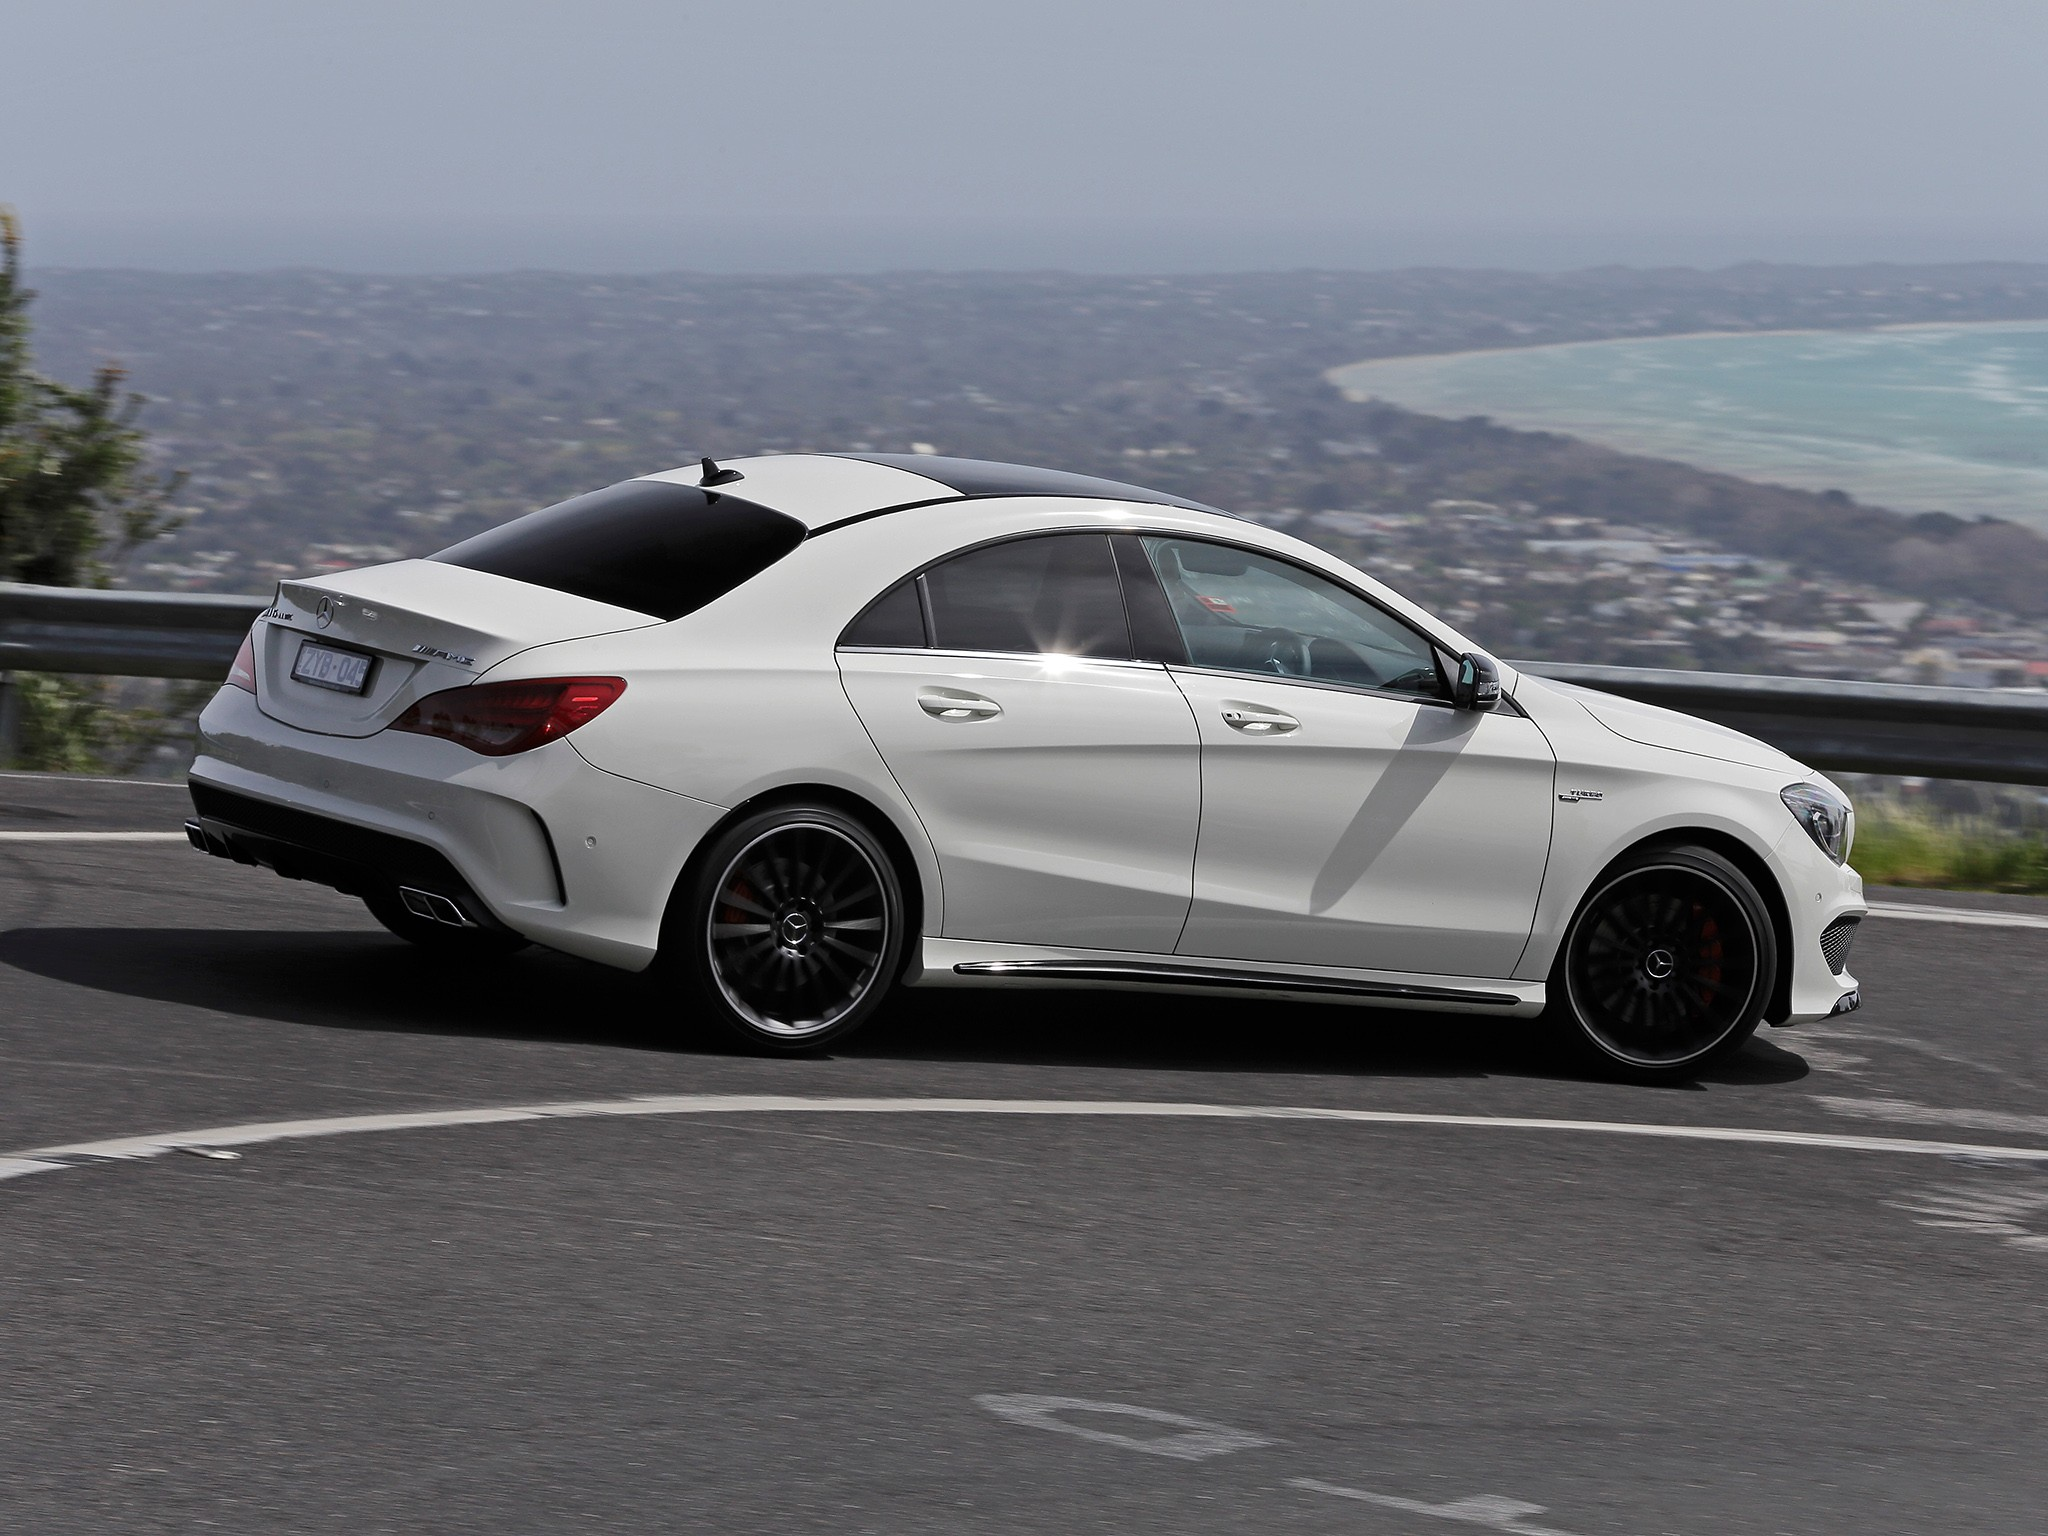 mercedes benz cla 45 amg c117 specs 2013 2014 2015 2016 2017. Cars Review. Best American Auto & Cars Review